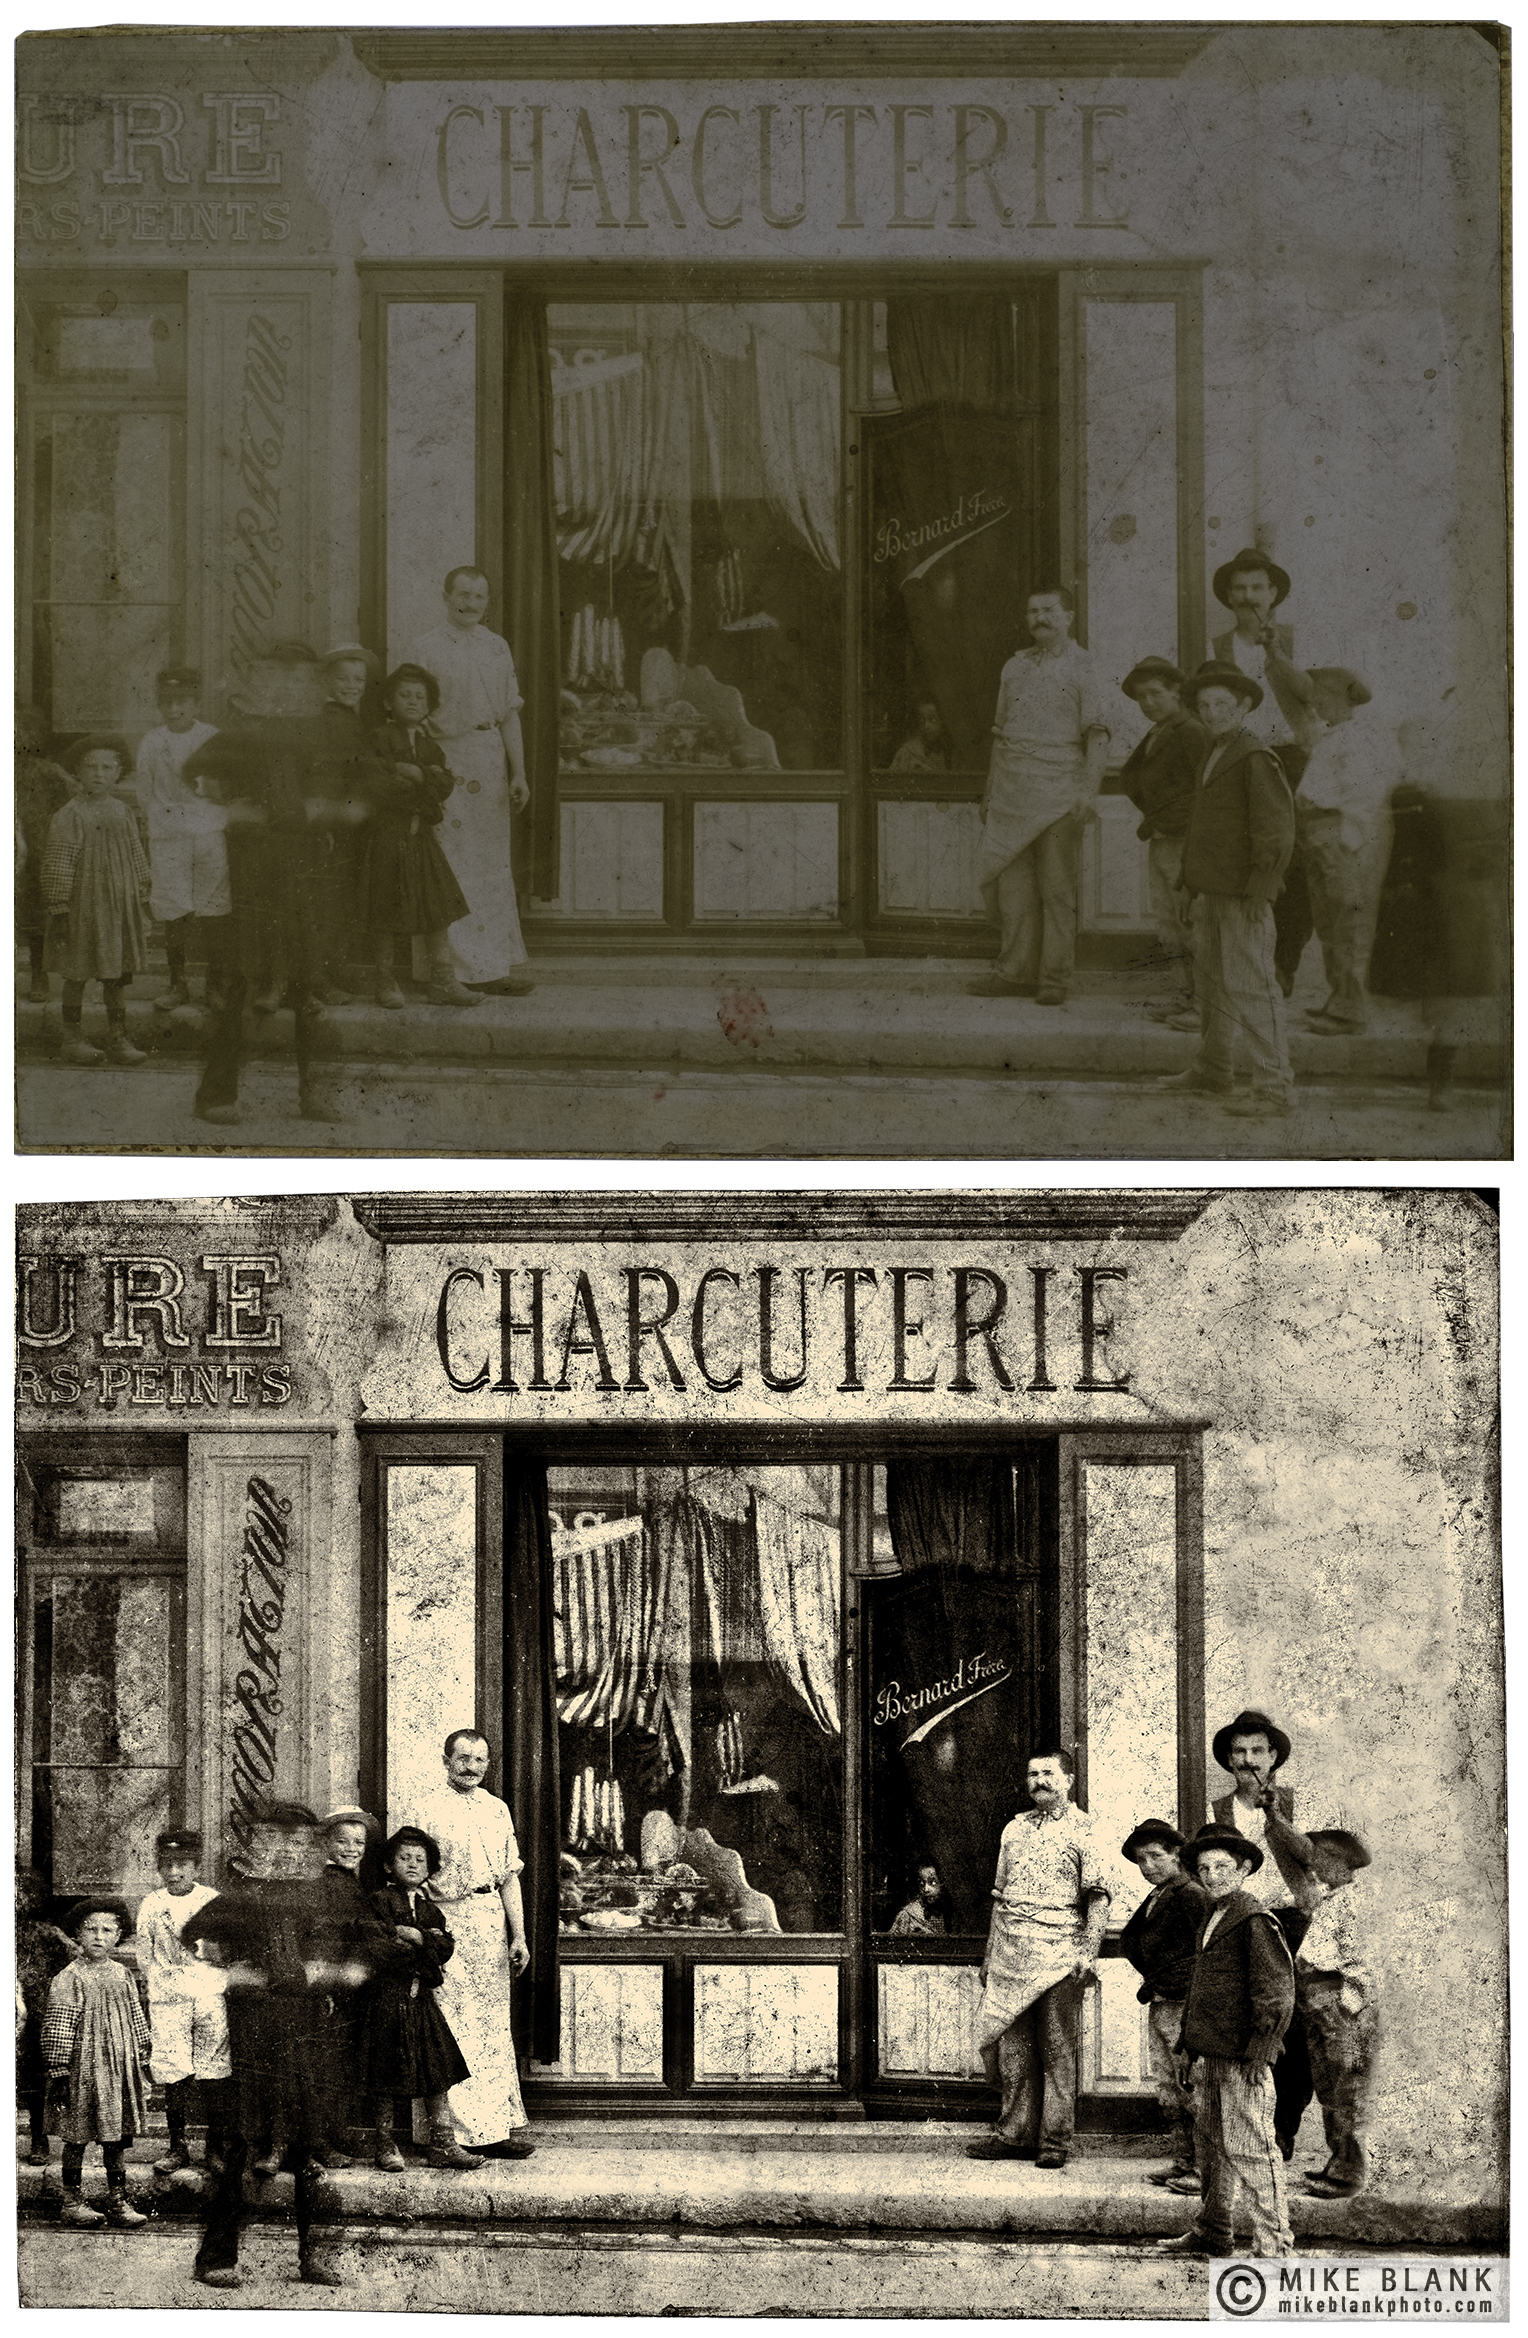 Digital restoration: Charcuterie, Marseille, likely 1900 - 1910